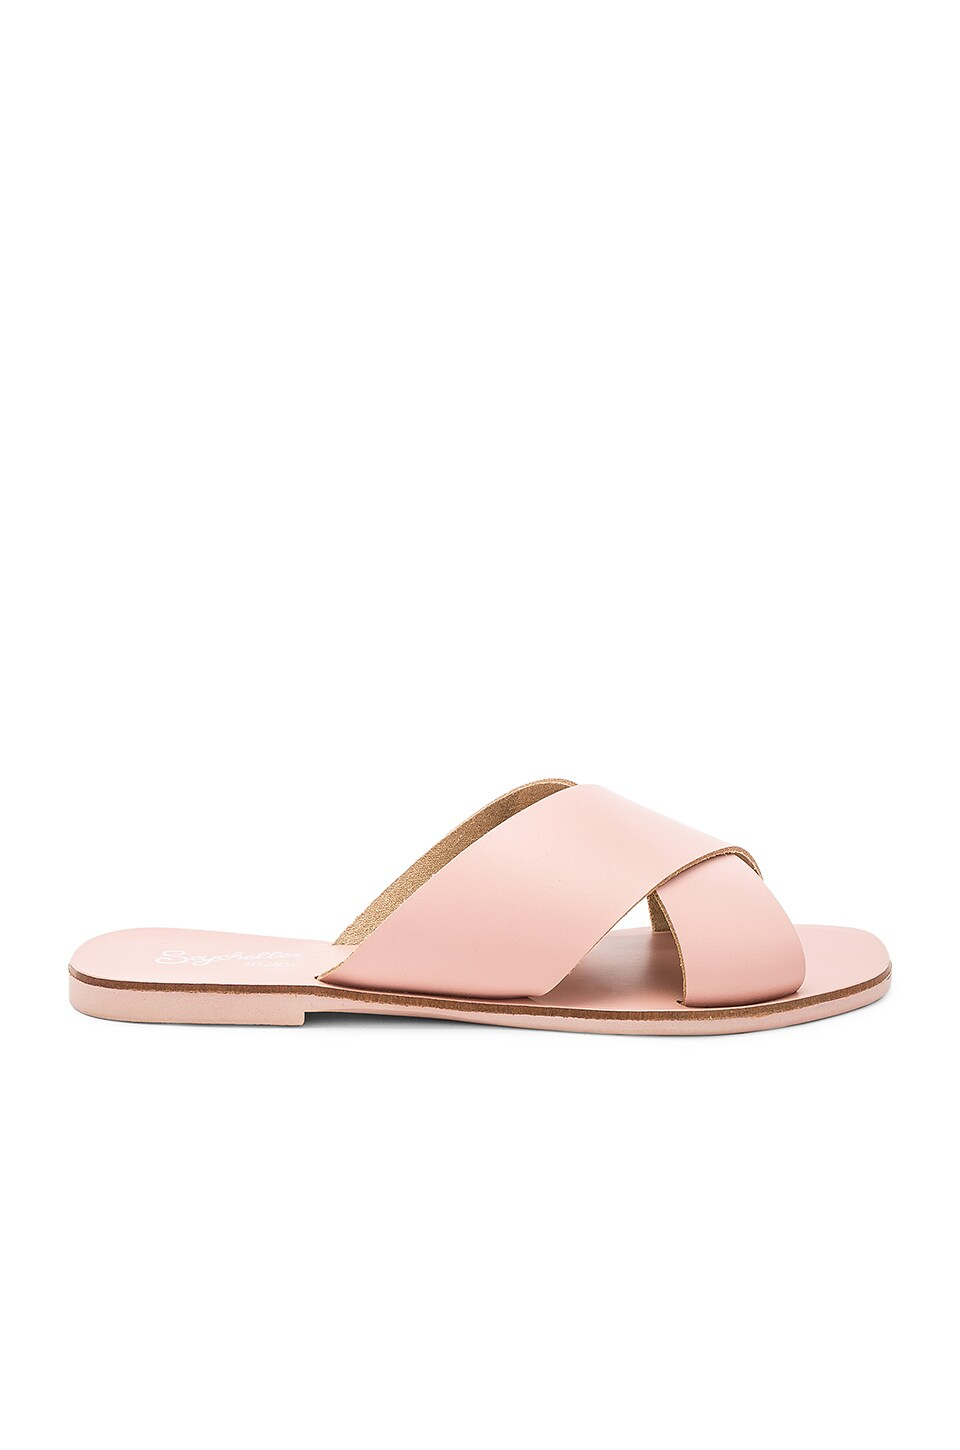 Seychelles Total Relaxation Sandals in Pink